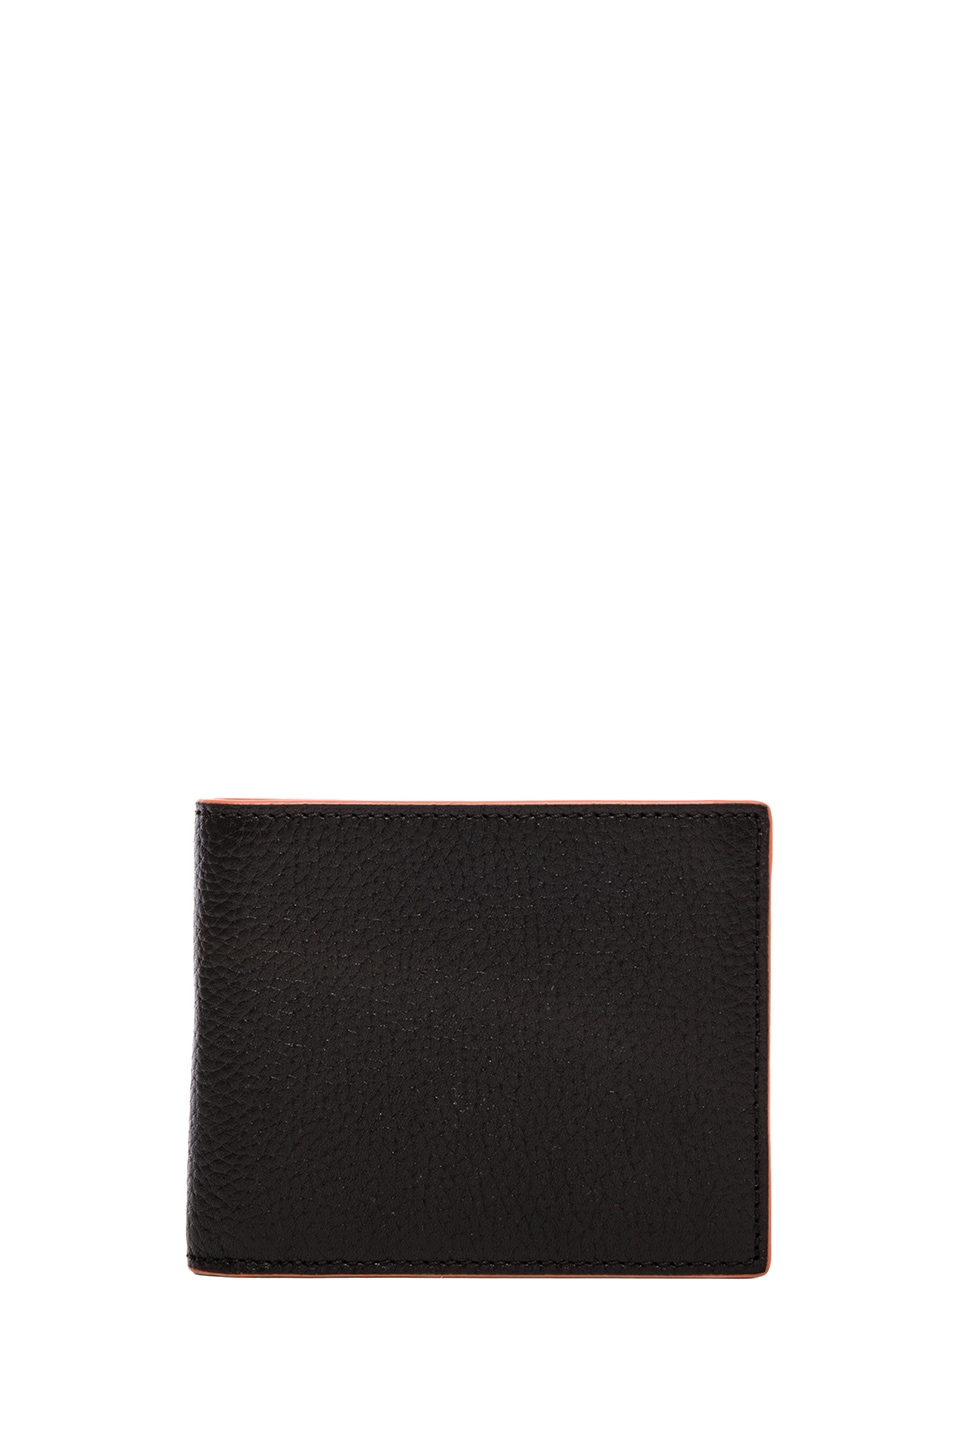 Jack Spade Mason Leather Vertical Flap Wallet in Black & Orange & Black & Cobalt